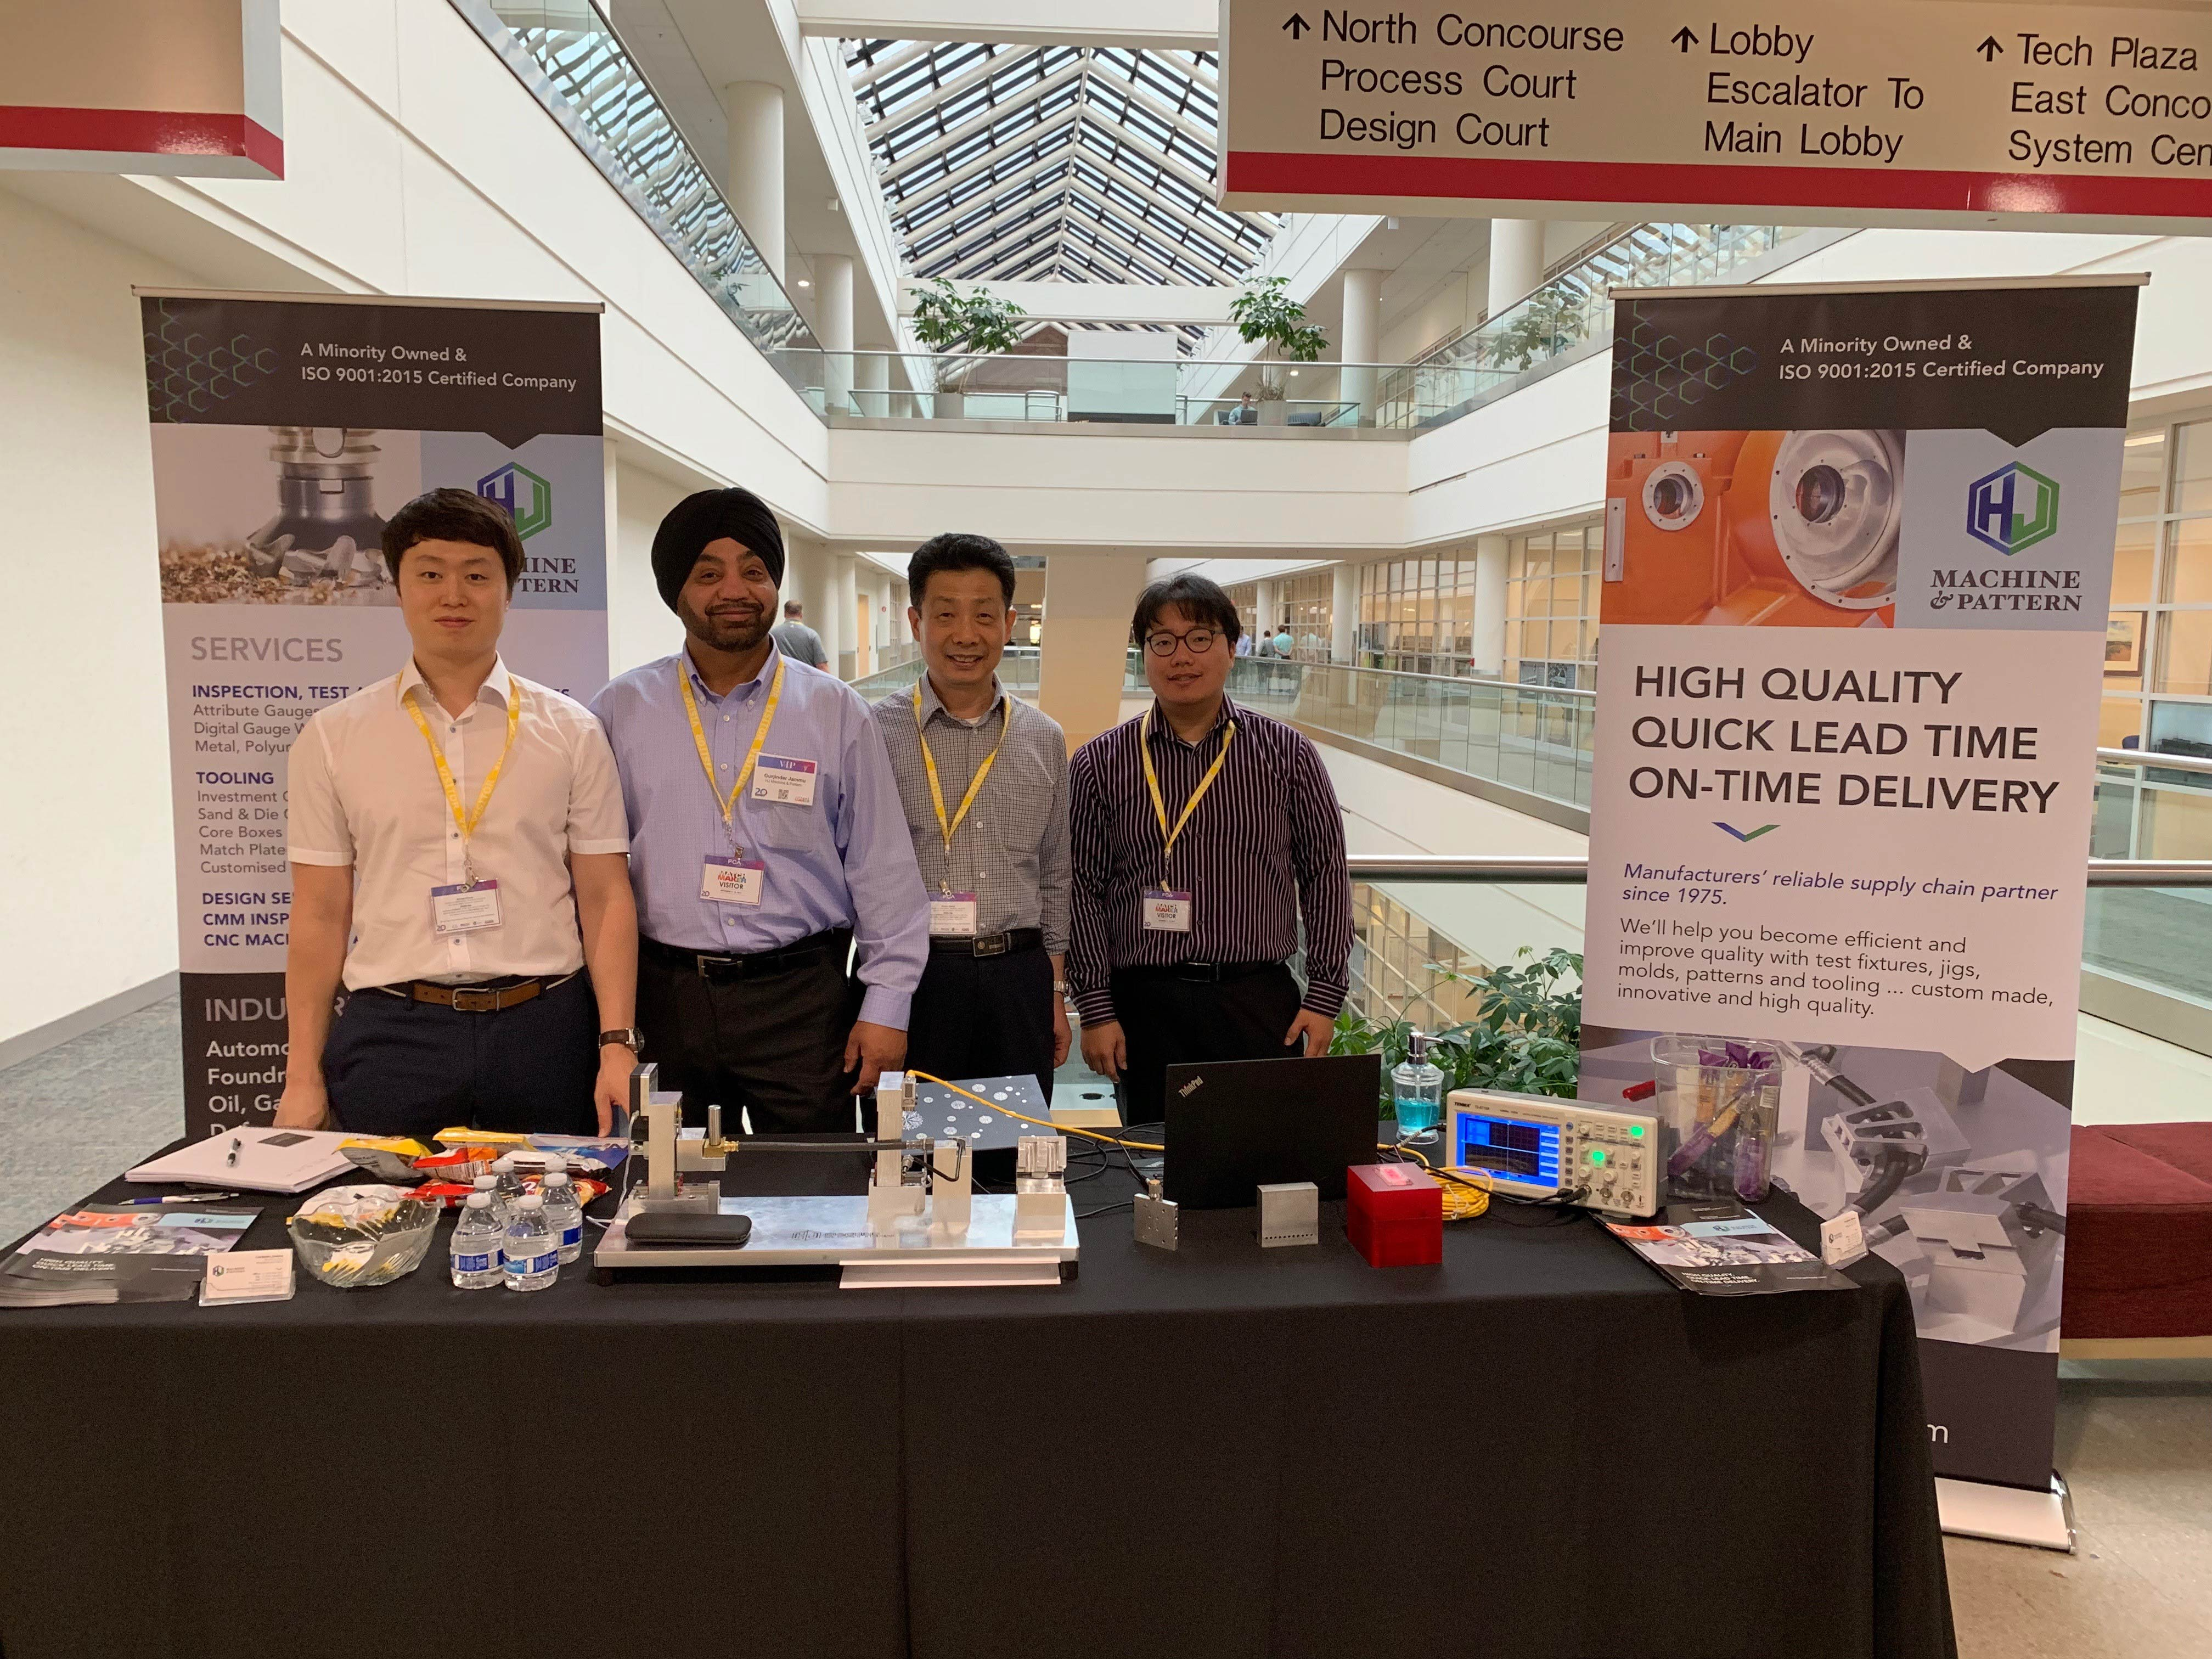 HJMP showcased its new products